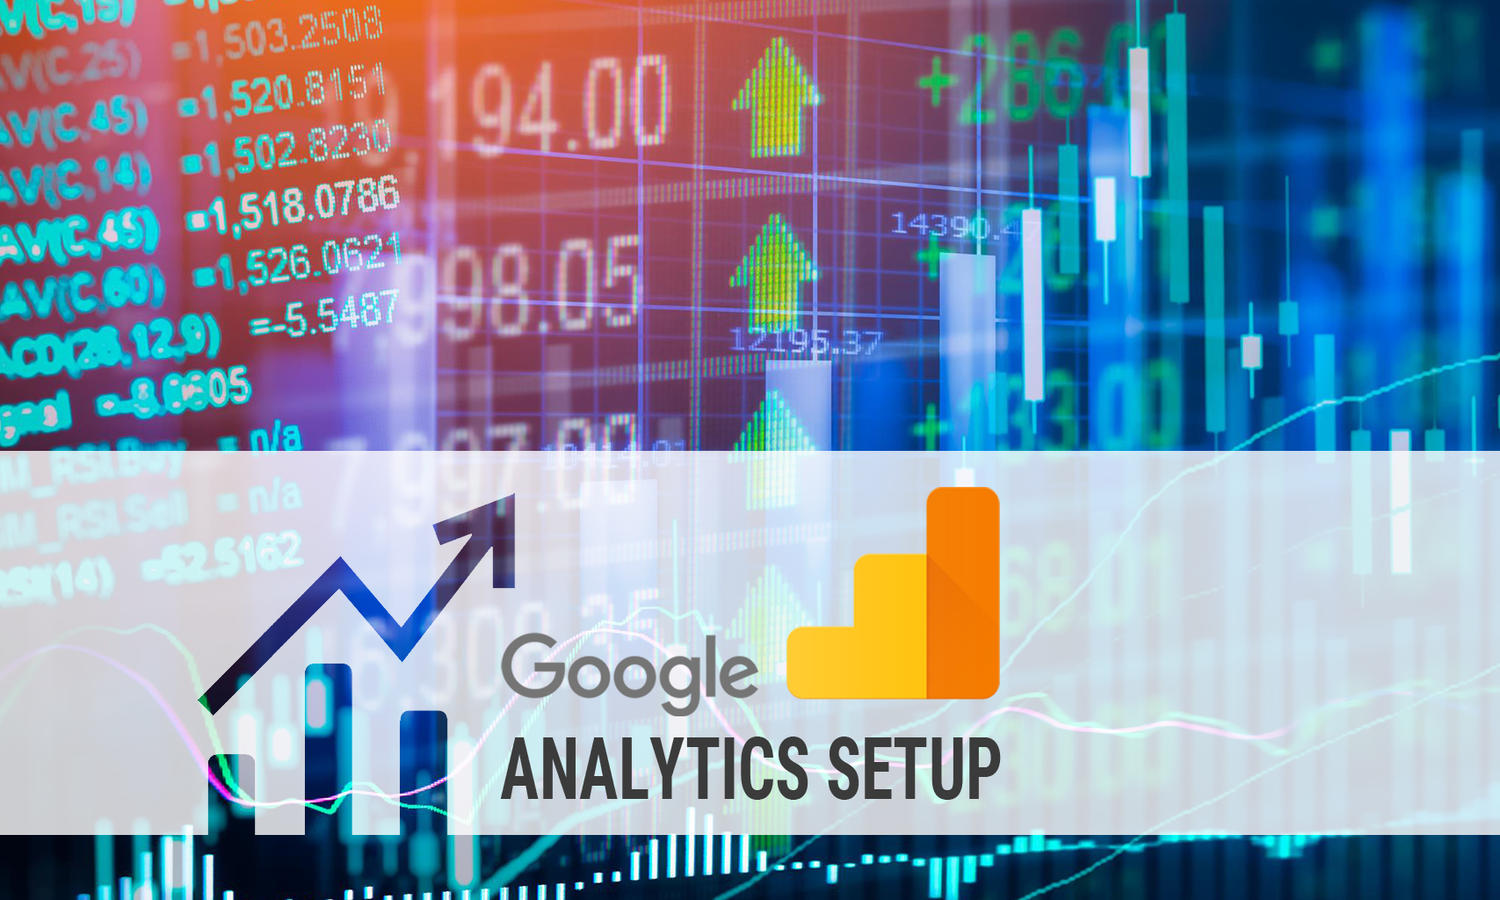 Google Analytics Setup by madridnyc - 110539